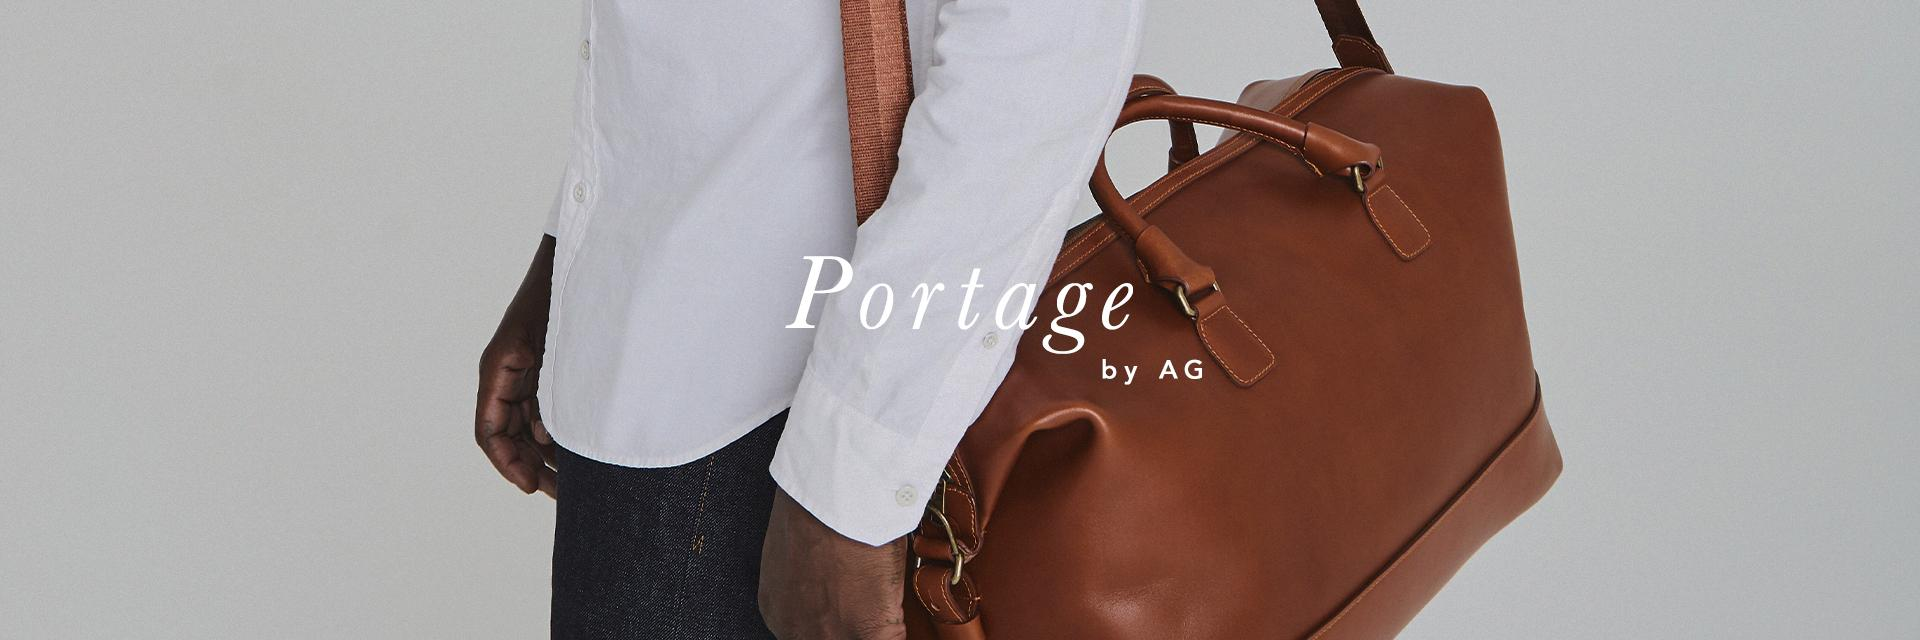 Portage by AG